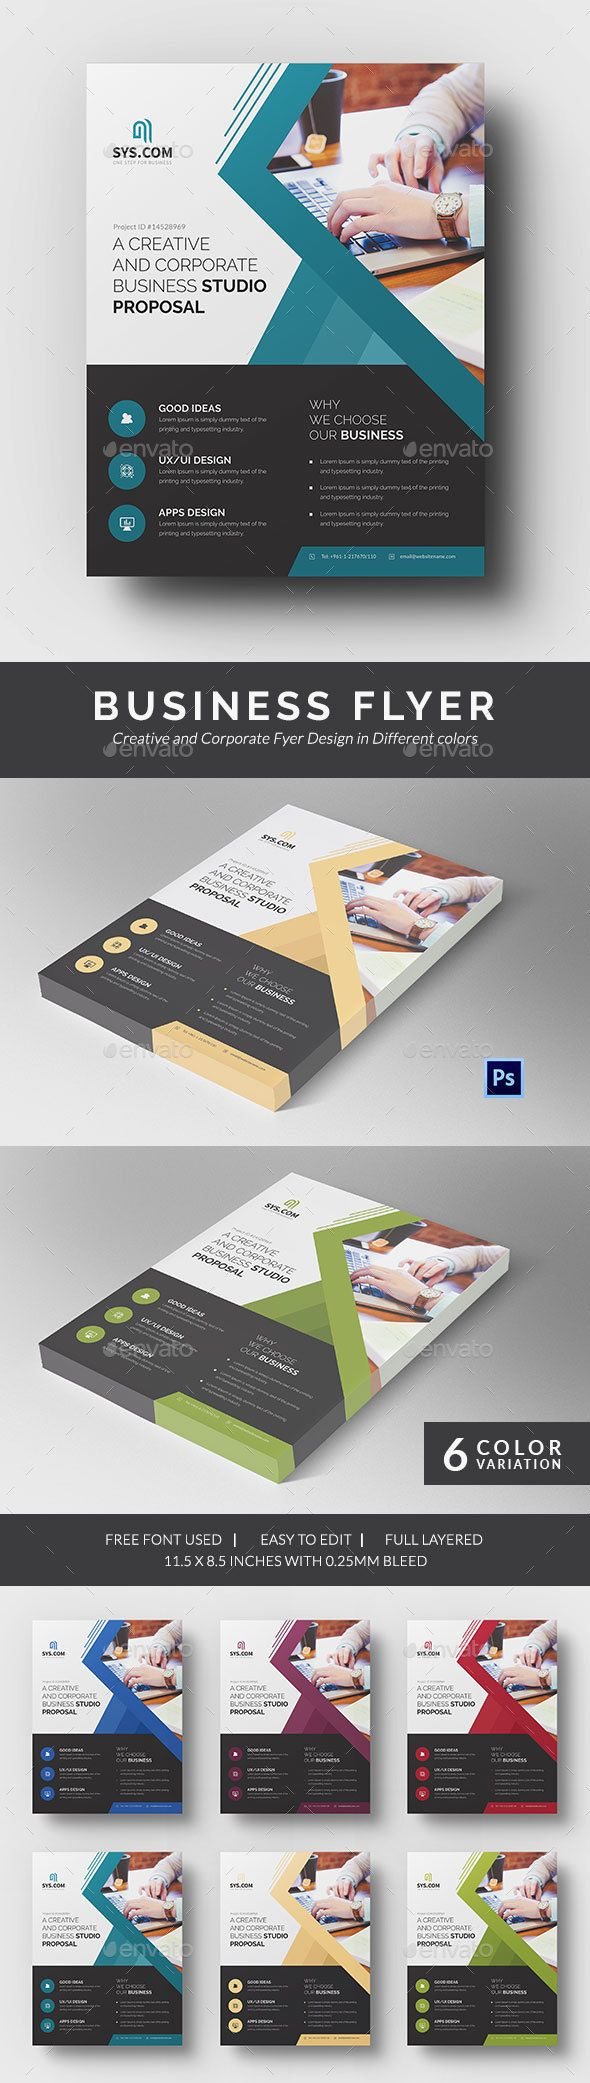 195 best Inspiration | Flyers images on Pinterest | Flyer template ...